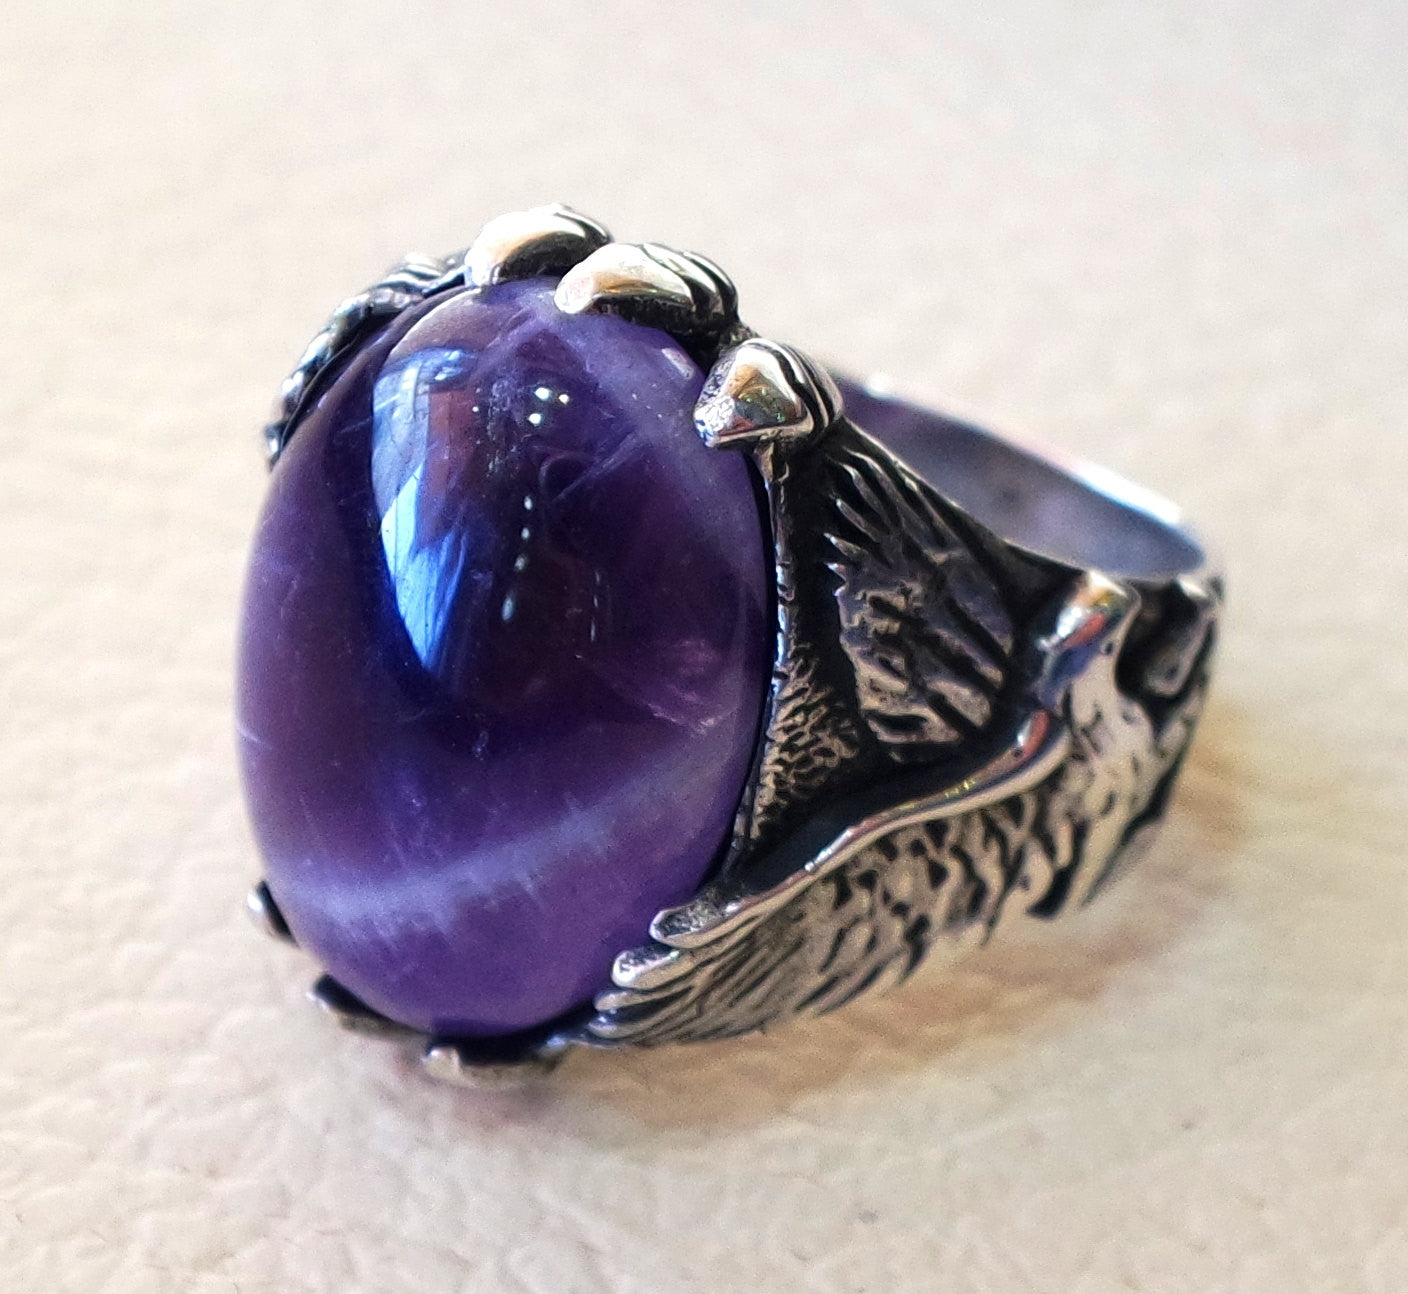 amethyst lace agate oval cabochon purple stone eagle sterling silver 925 men ring all sizes fast shipping oxidized antique classic jewelry